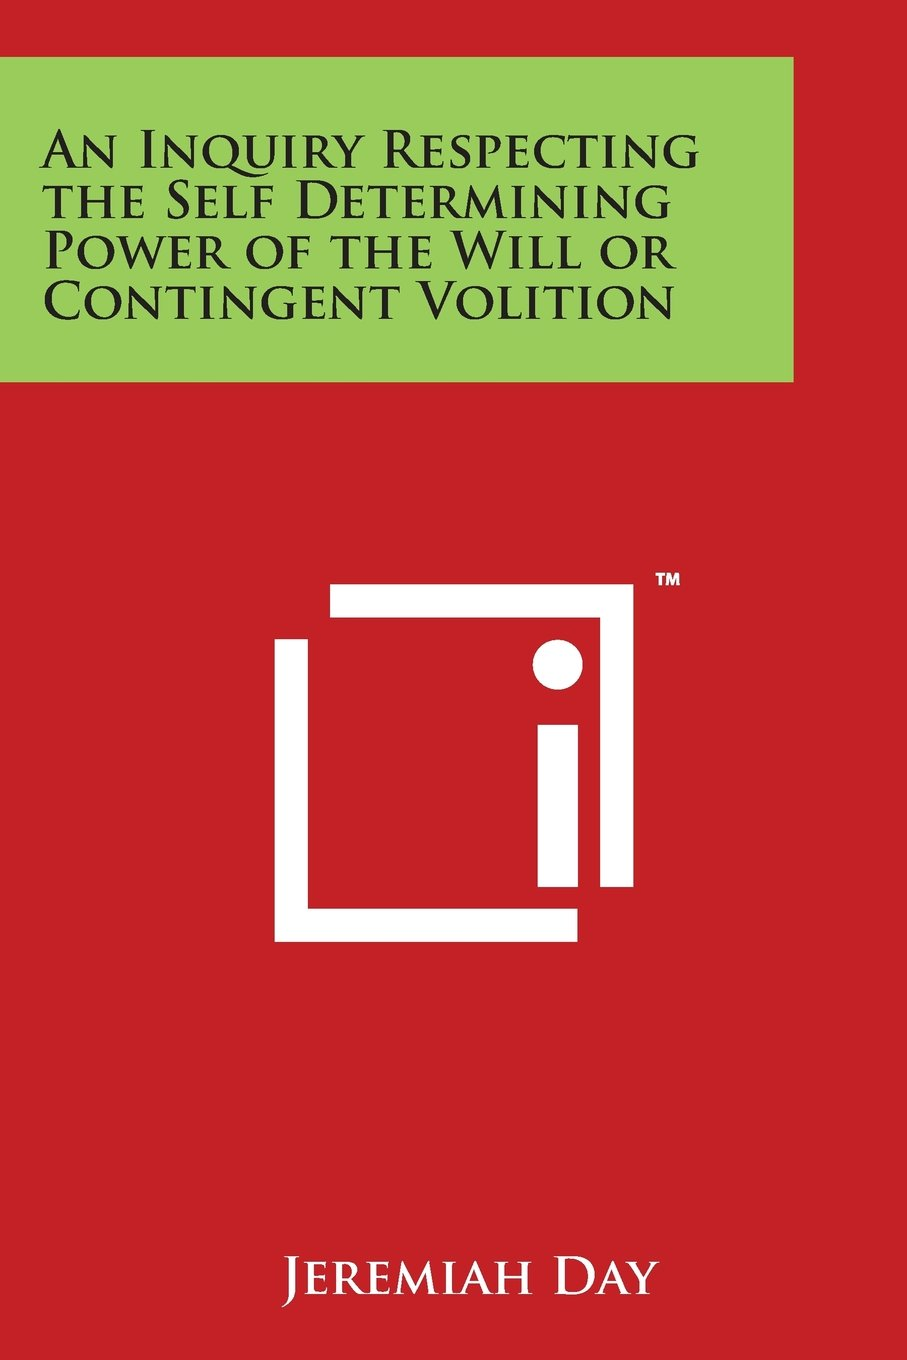 An Inquiry Respecting the Self Determining Power of the Will or Contingent  Volition Paperback – March 30 5a0a42d19